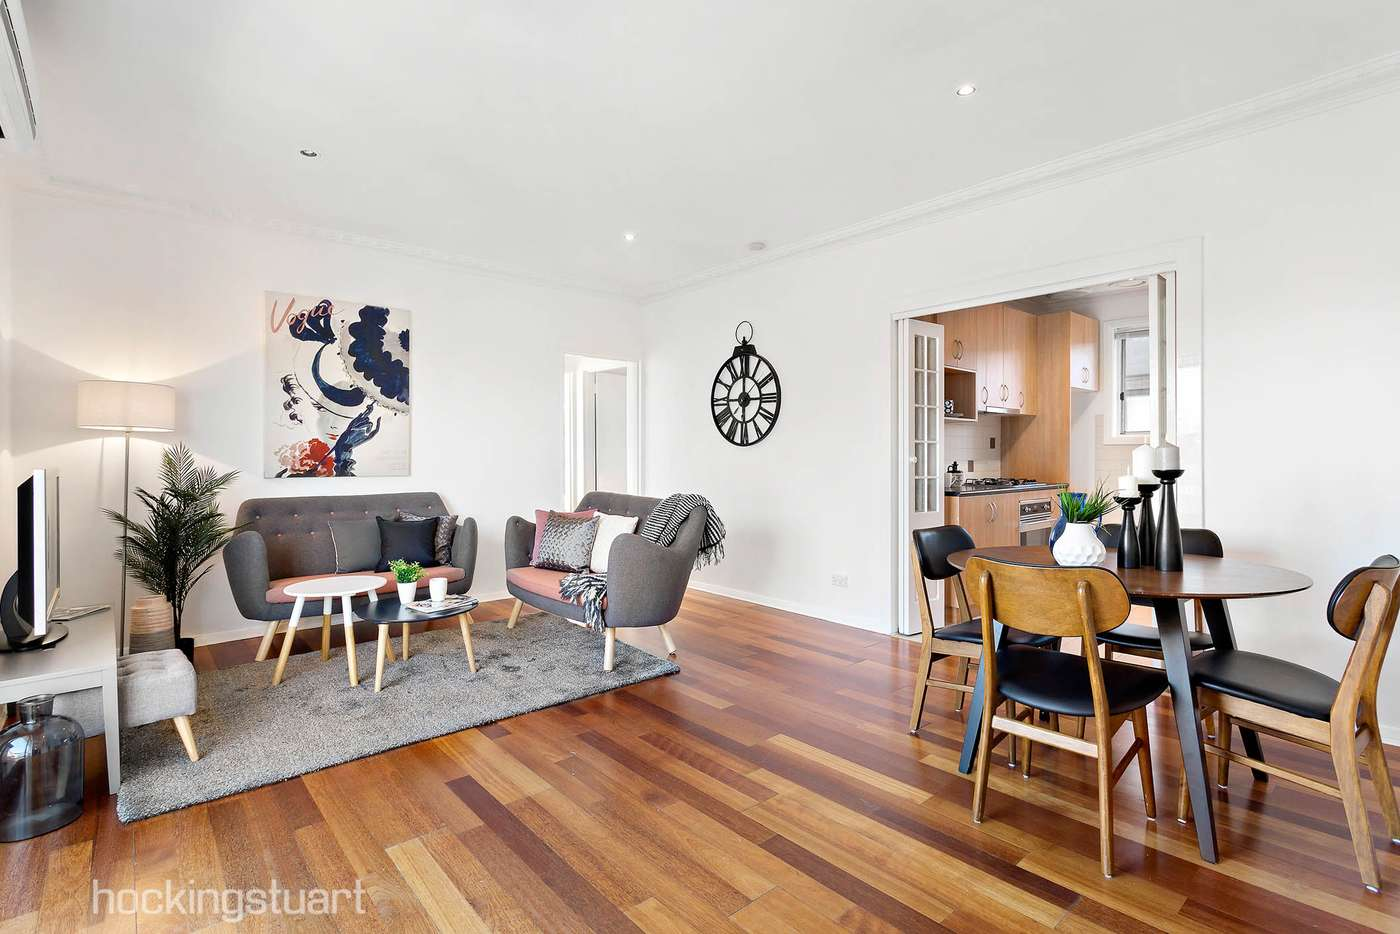 Main view of Homely apartment listing, 6/66 De Carle Street, Brunswick VIC 3056